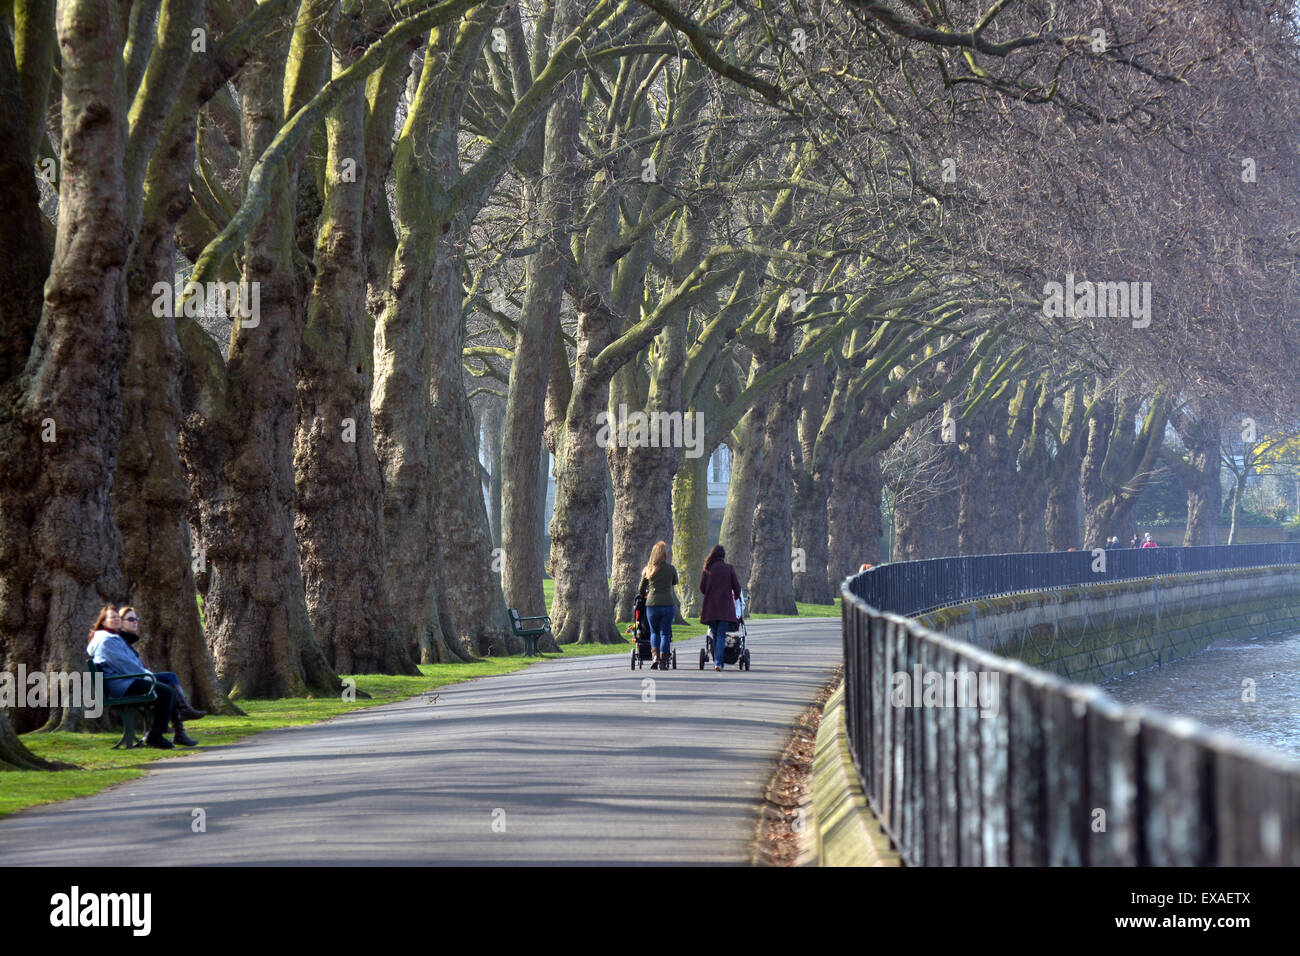 Landscapes along the south bank - Stock Photo Two Women Walking Along An Avenue Of Plane Trees In Wandsworth Park On The South Bank Of The River Thames At Putney